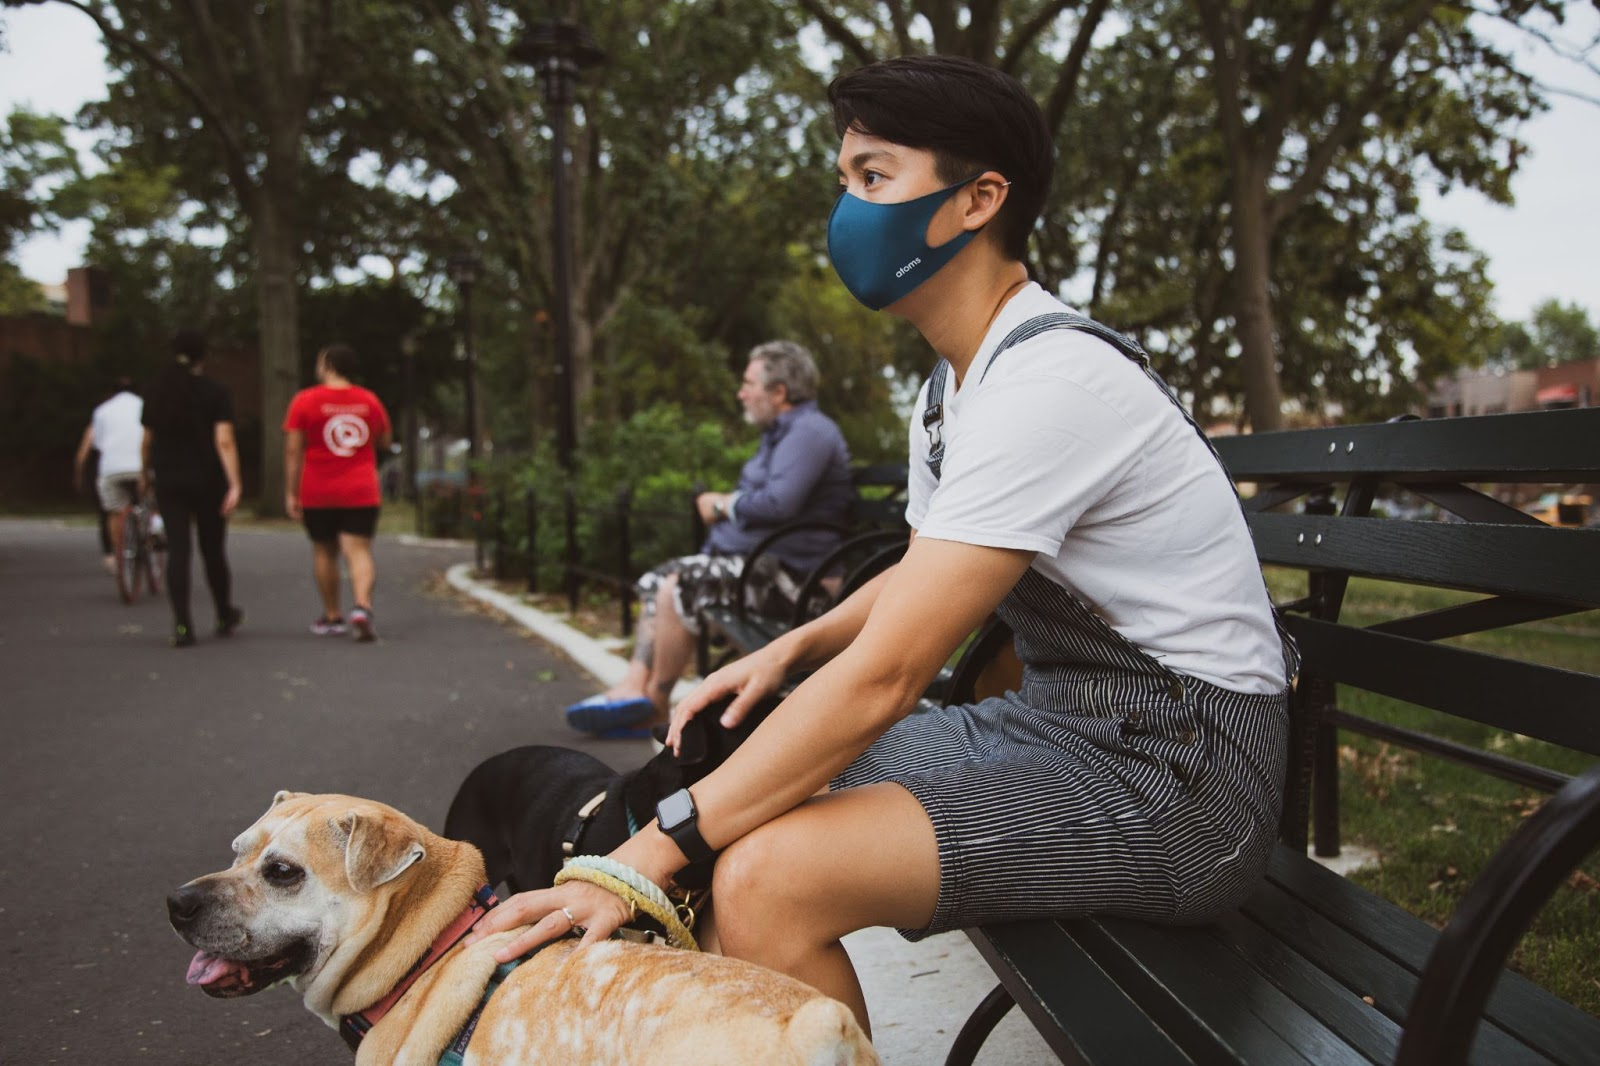 Park and Recreation spaces more important post Pandemic